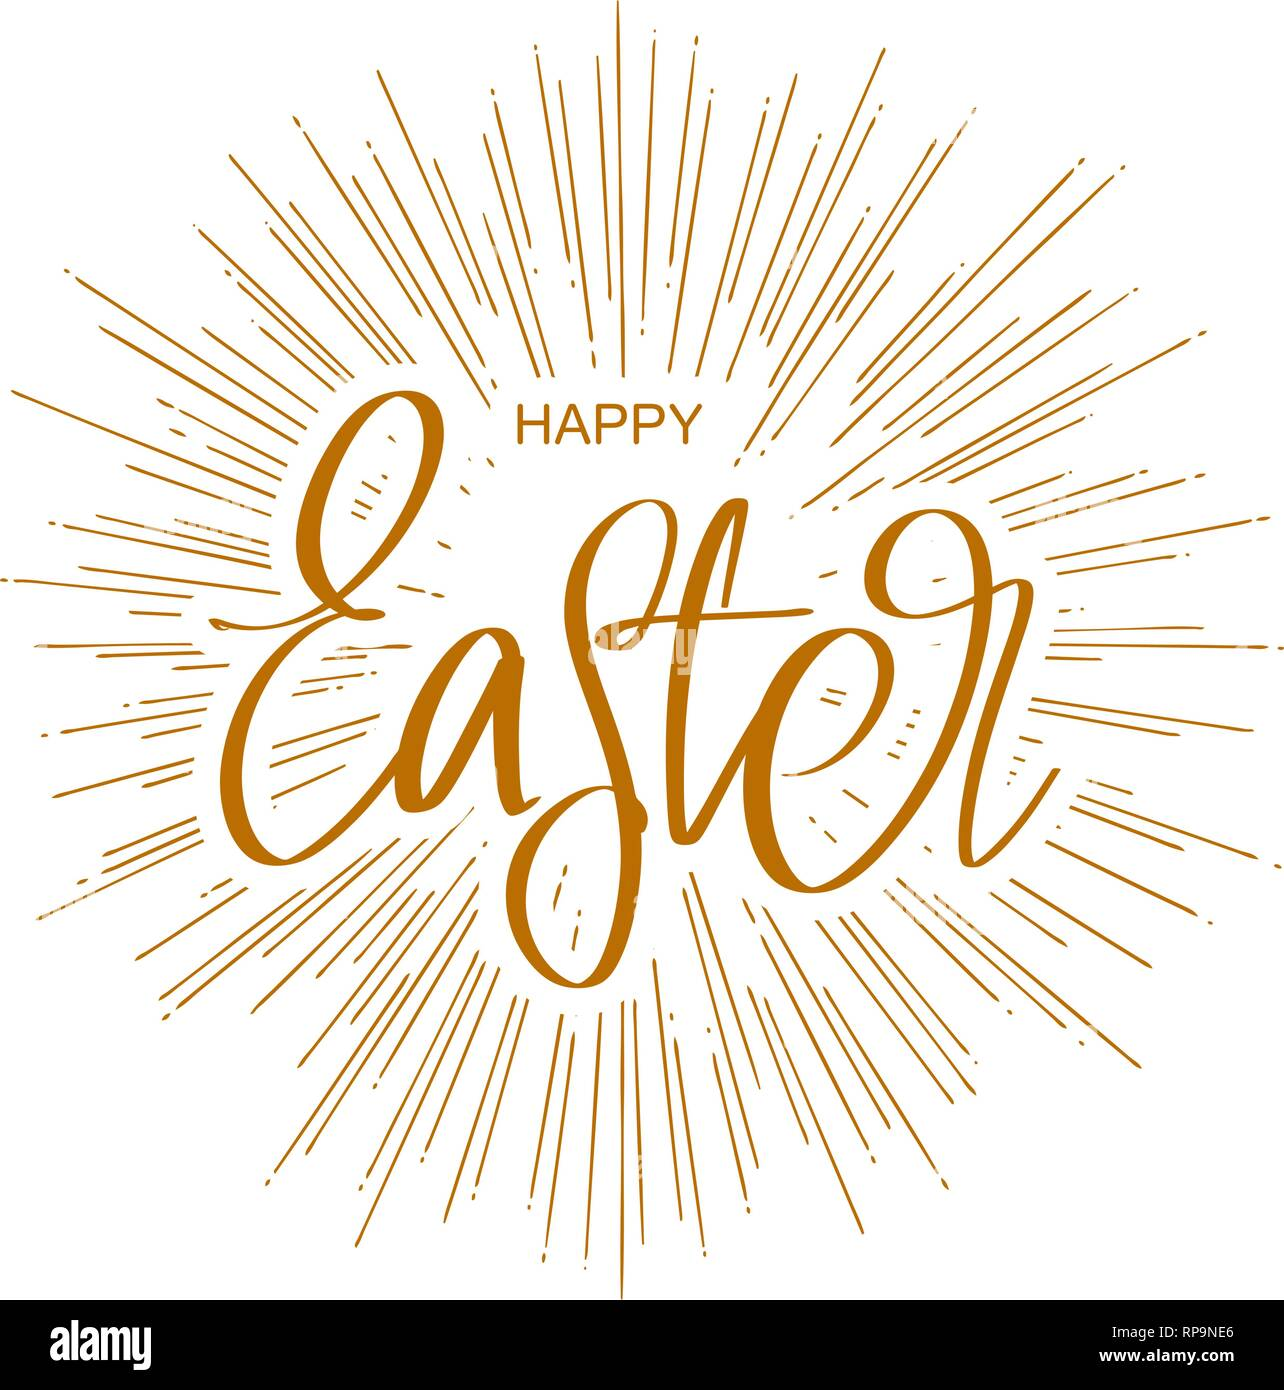 Happy Easter Holiday Religious Calligraphic Text Symbol Of Christianity Hand Drawn Vector Illustration Sketch Stock Vector Image Art Alamy